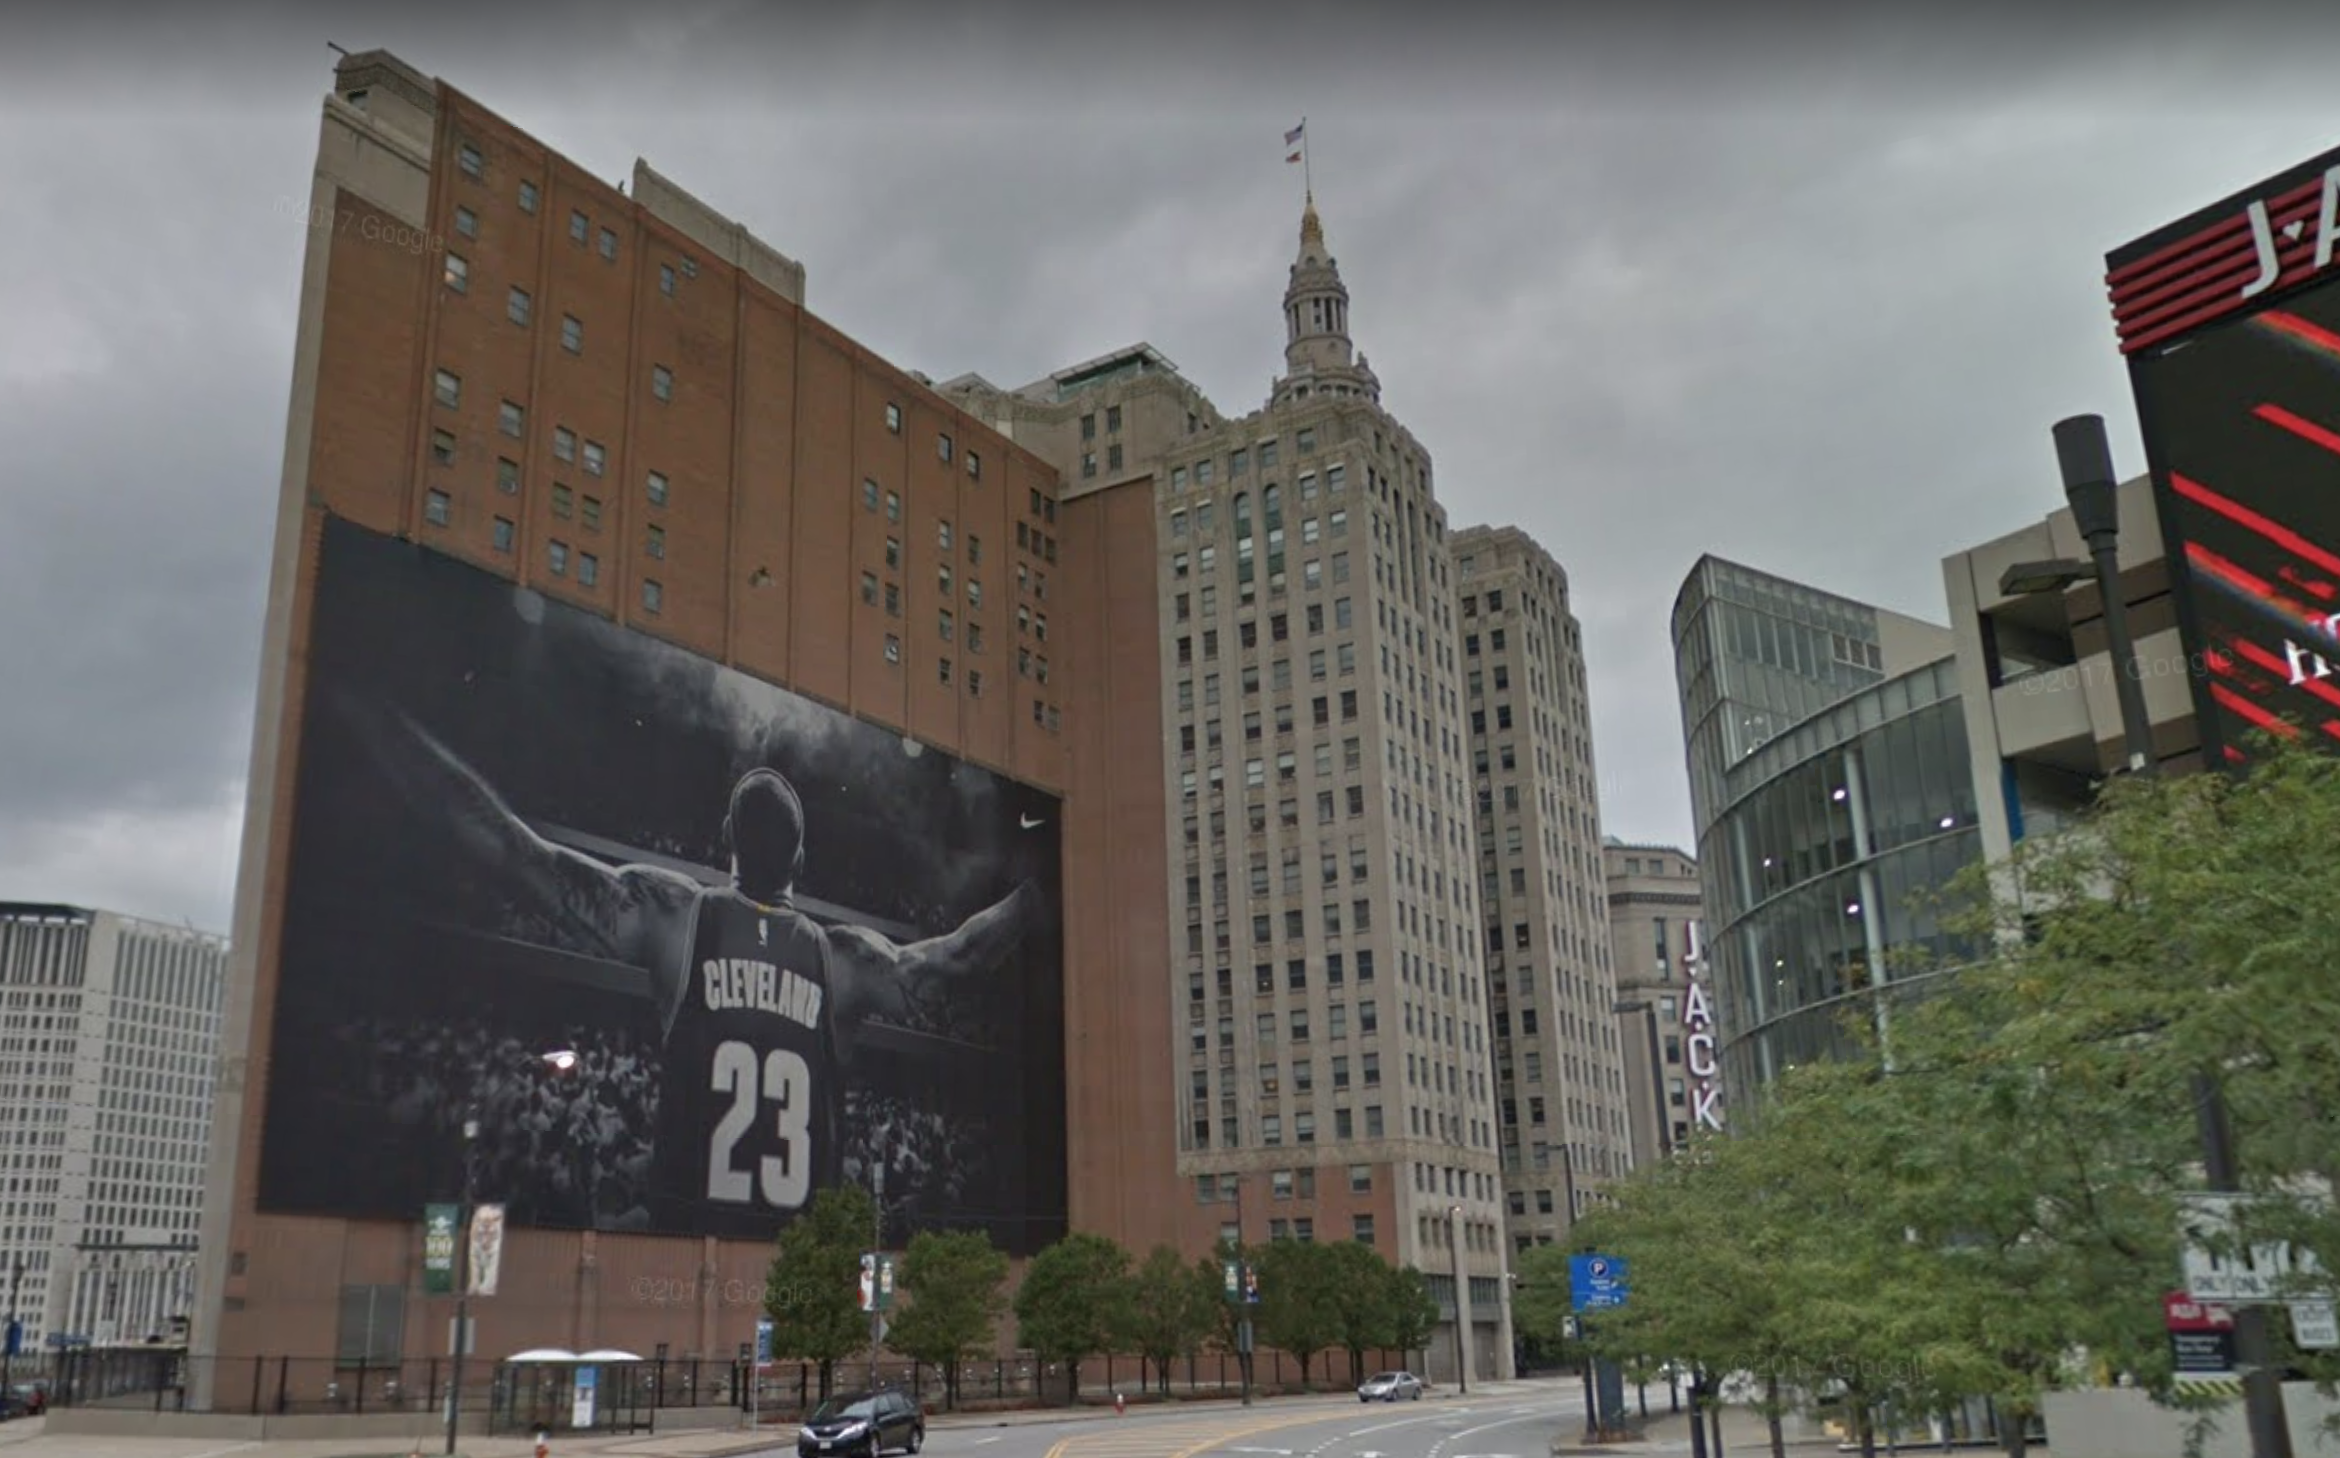 LeBron James black-and-white mural in Cleveland